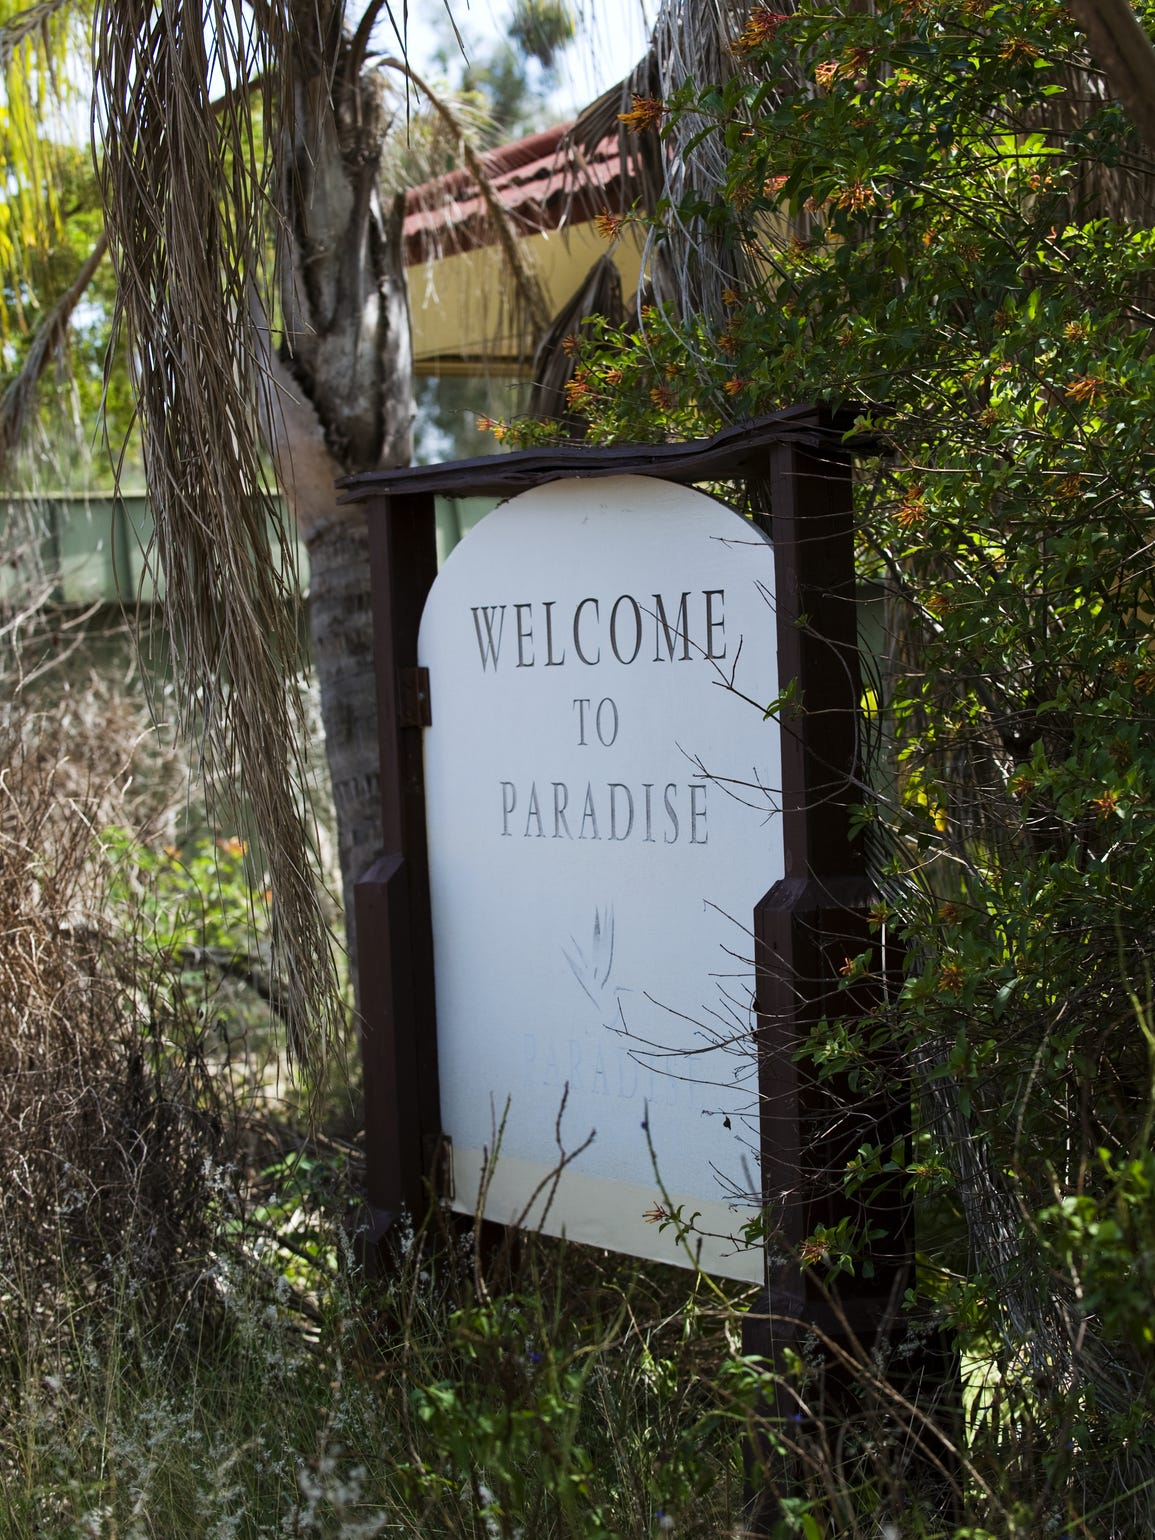 The welcome sign at Paradise Preserve in North Fort